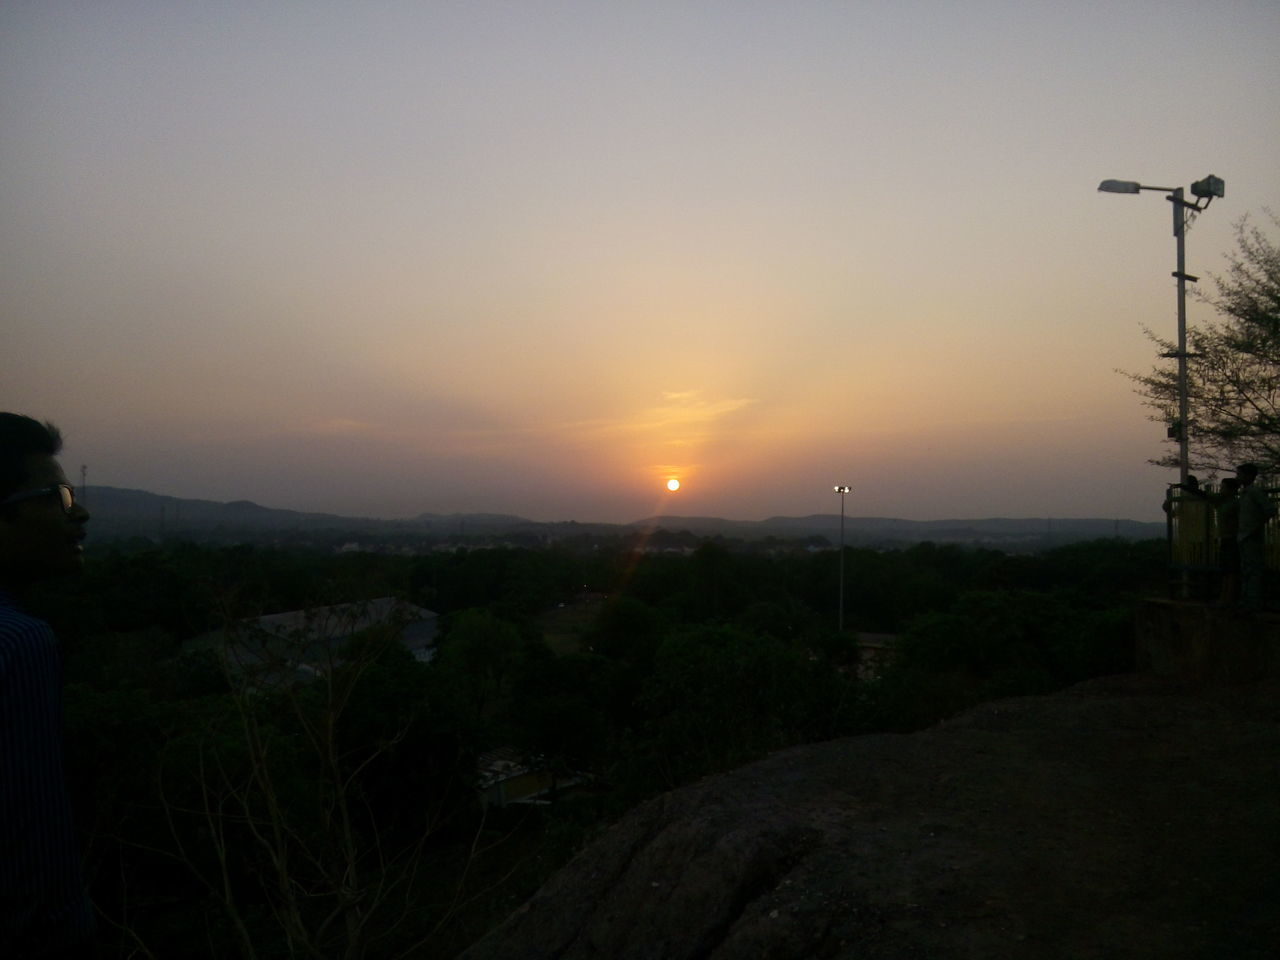 sunset, no people, nature, sky, silhouette, beauty in nature, outdoors, scenics, mountain